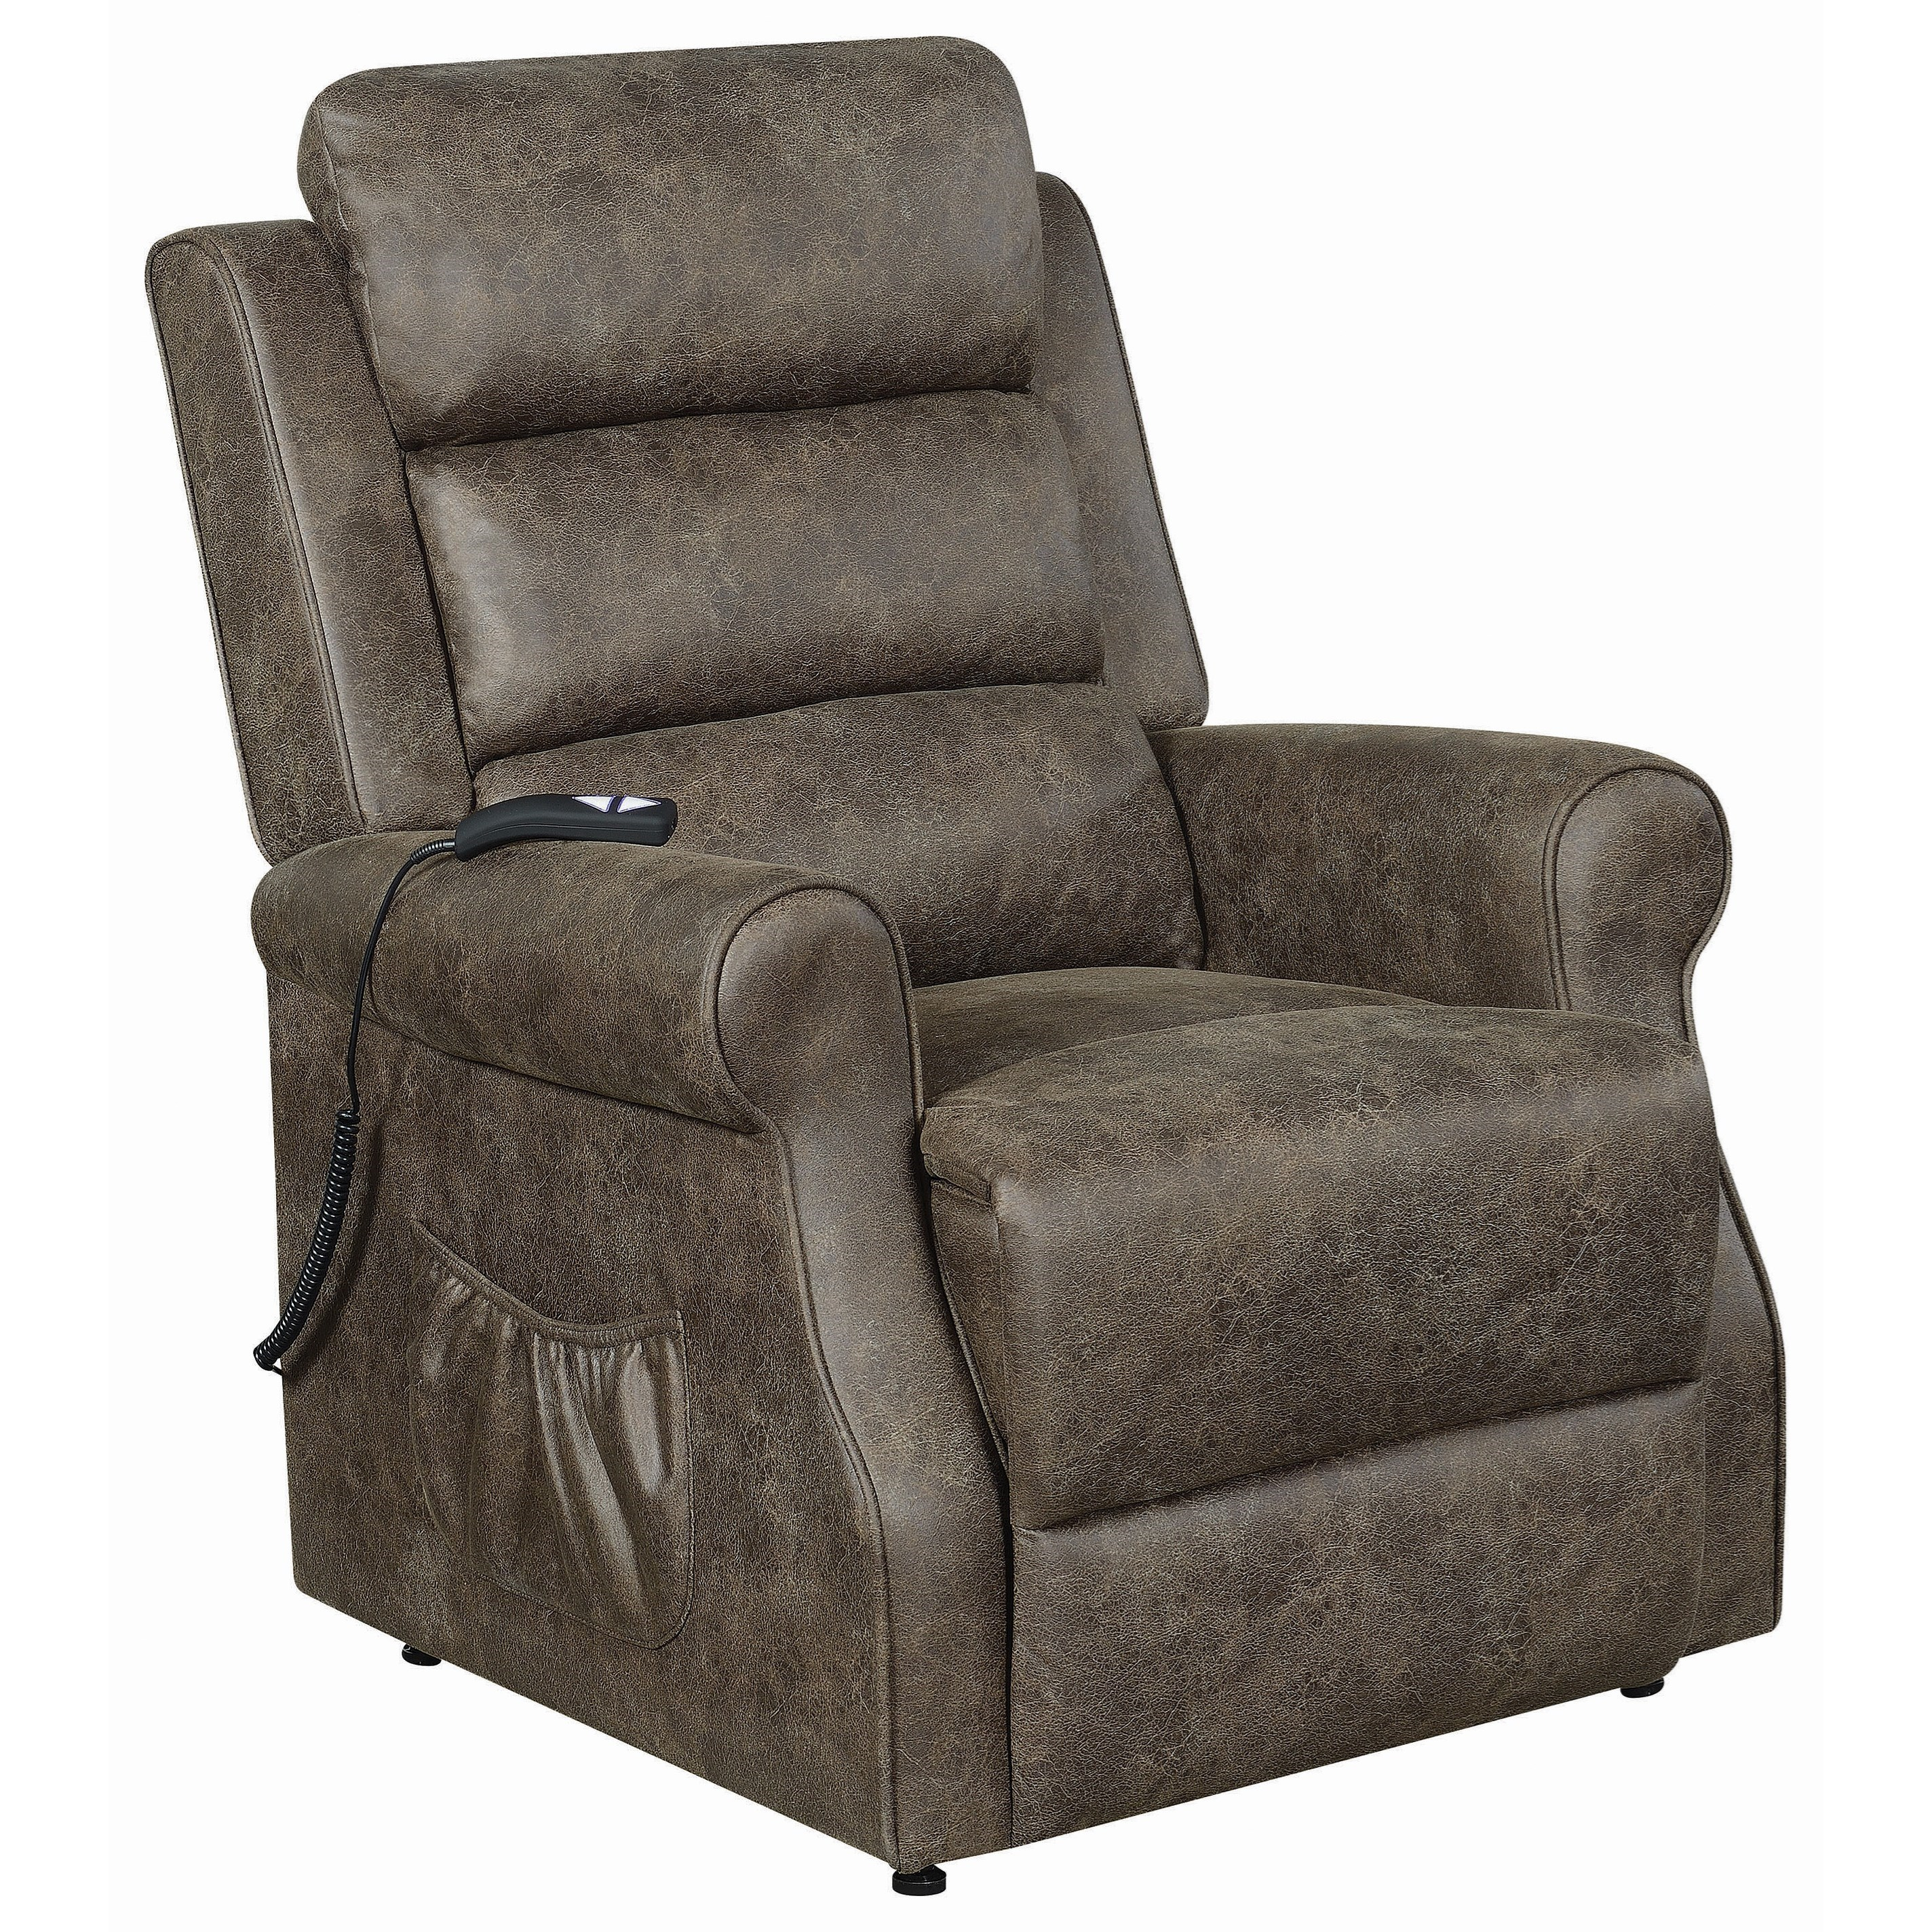 6503 Power Lift Recliner - Large by Coaster at Dream Home Interiors